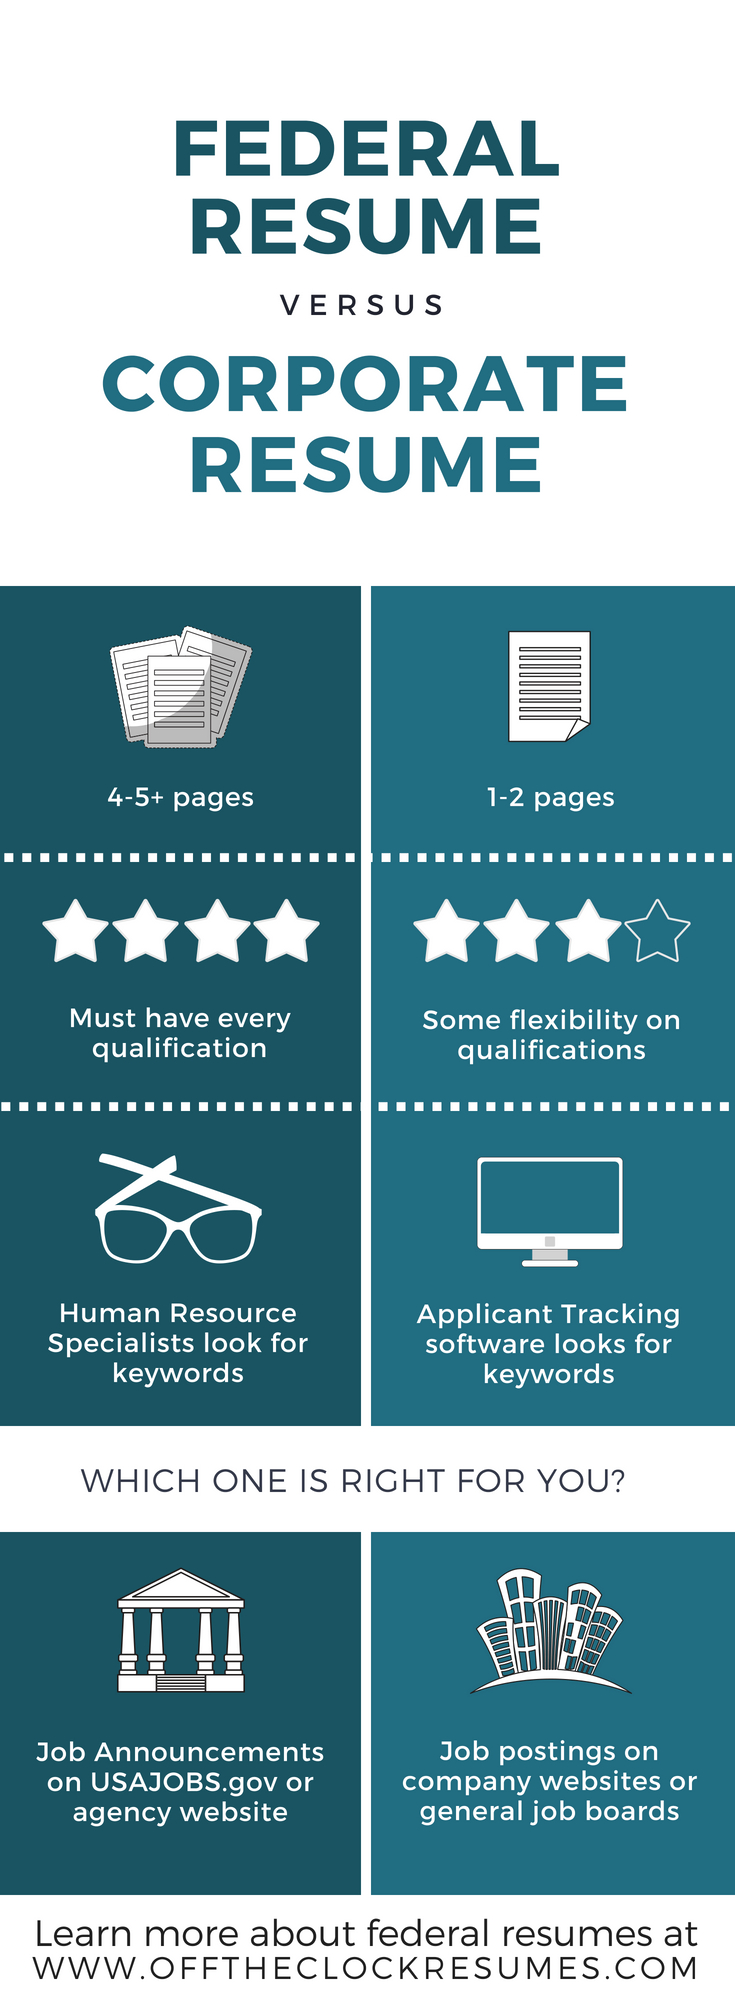 Federal Resume vs. Corporate Resume: Which One Is Right For You? | Off The Clock Resumes